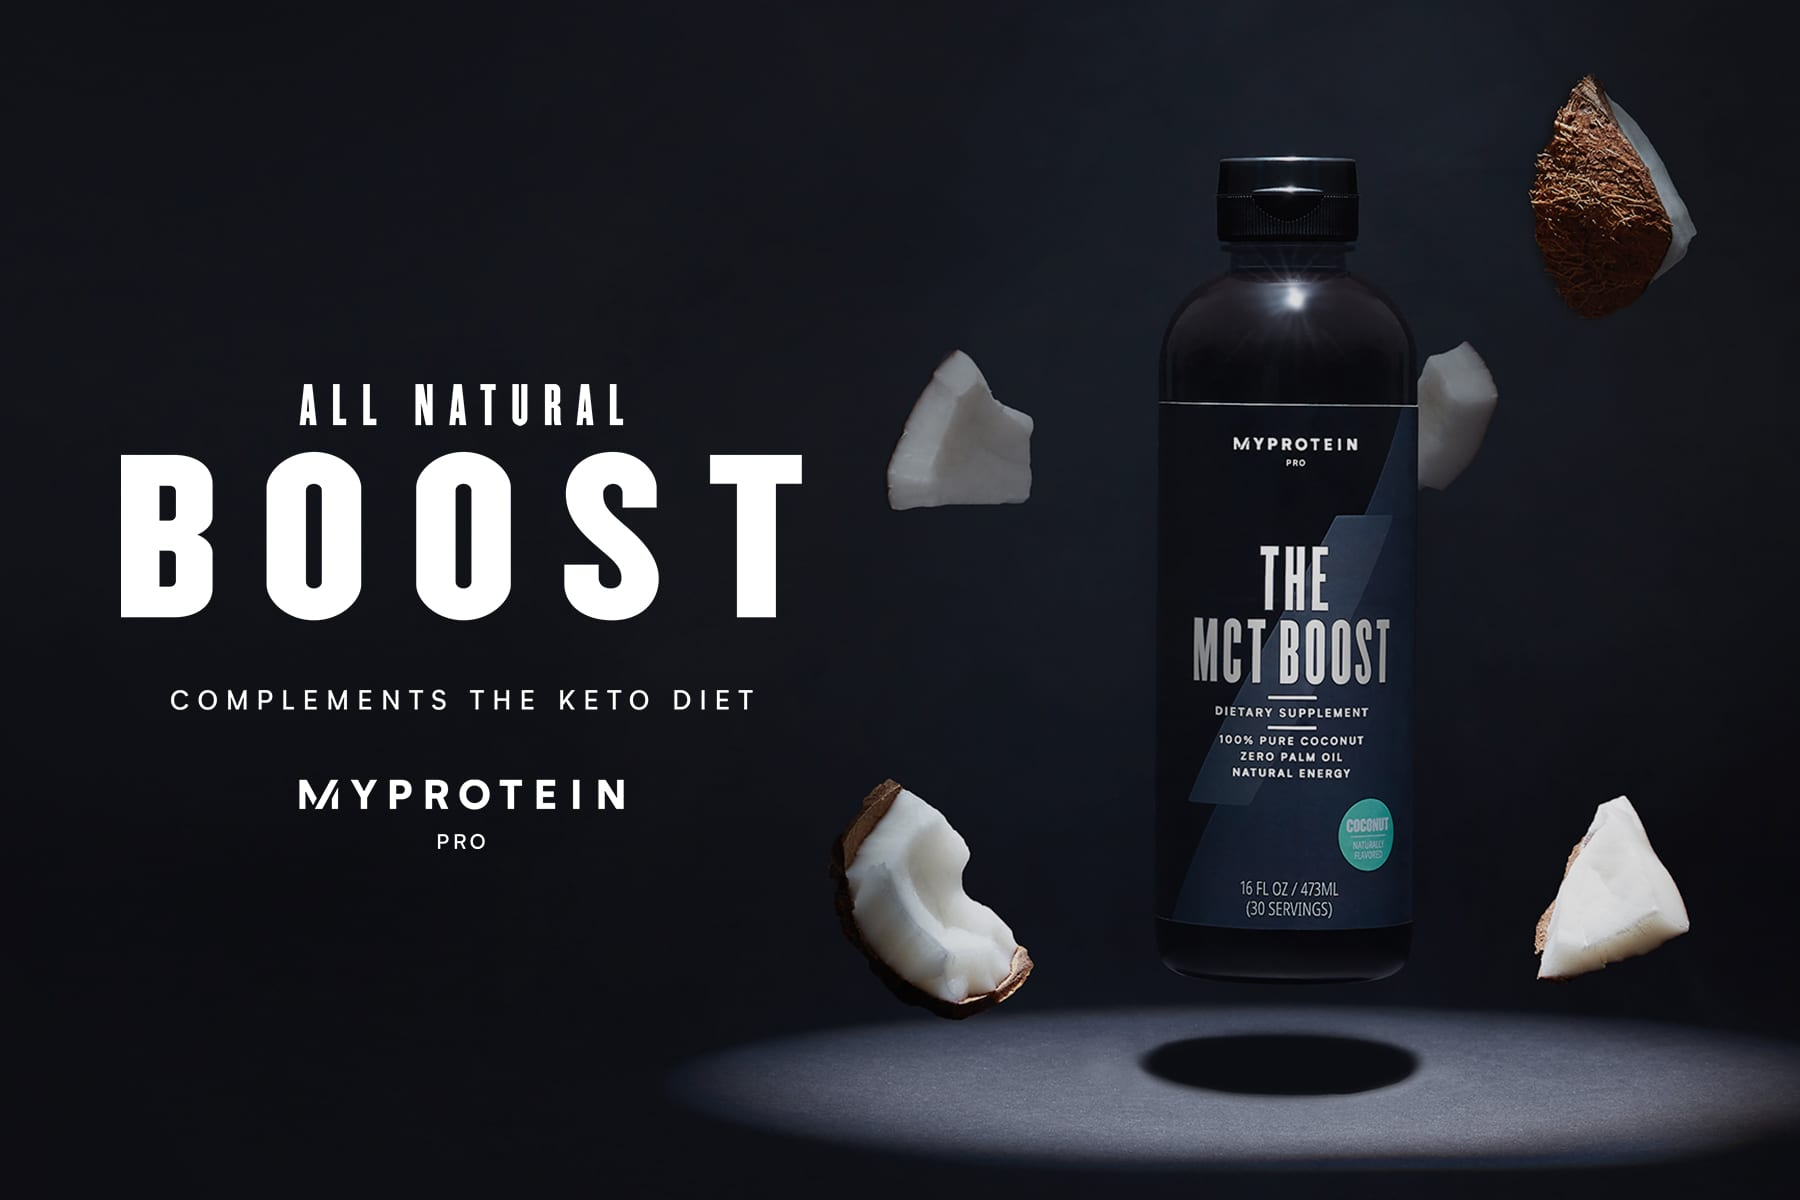 Introducing: THE MCT Boost — Your All-Natural Energy Boost